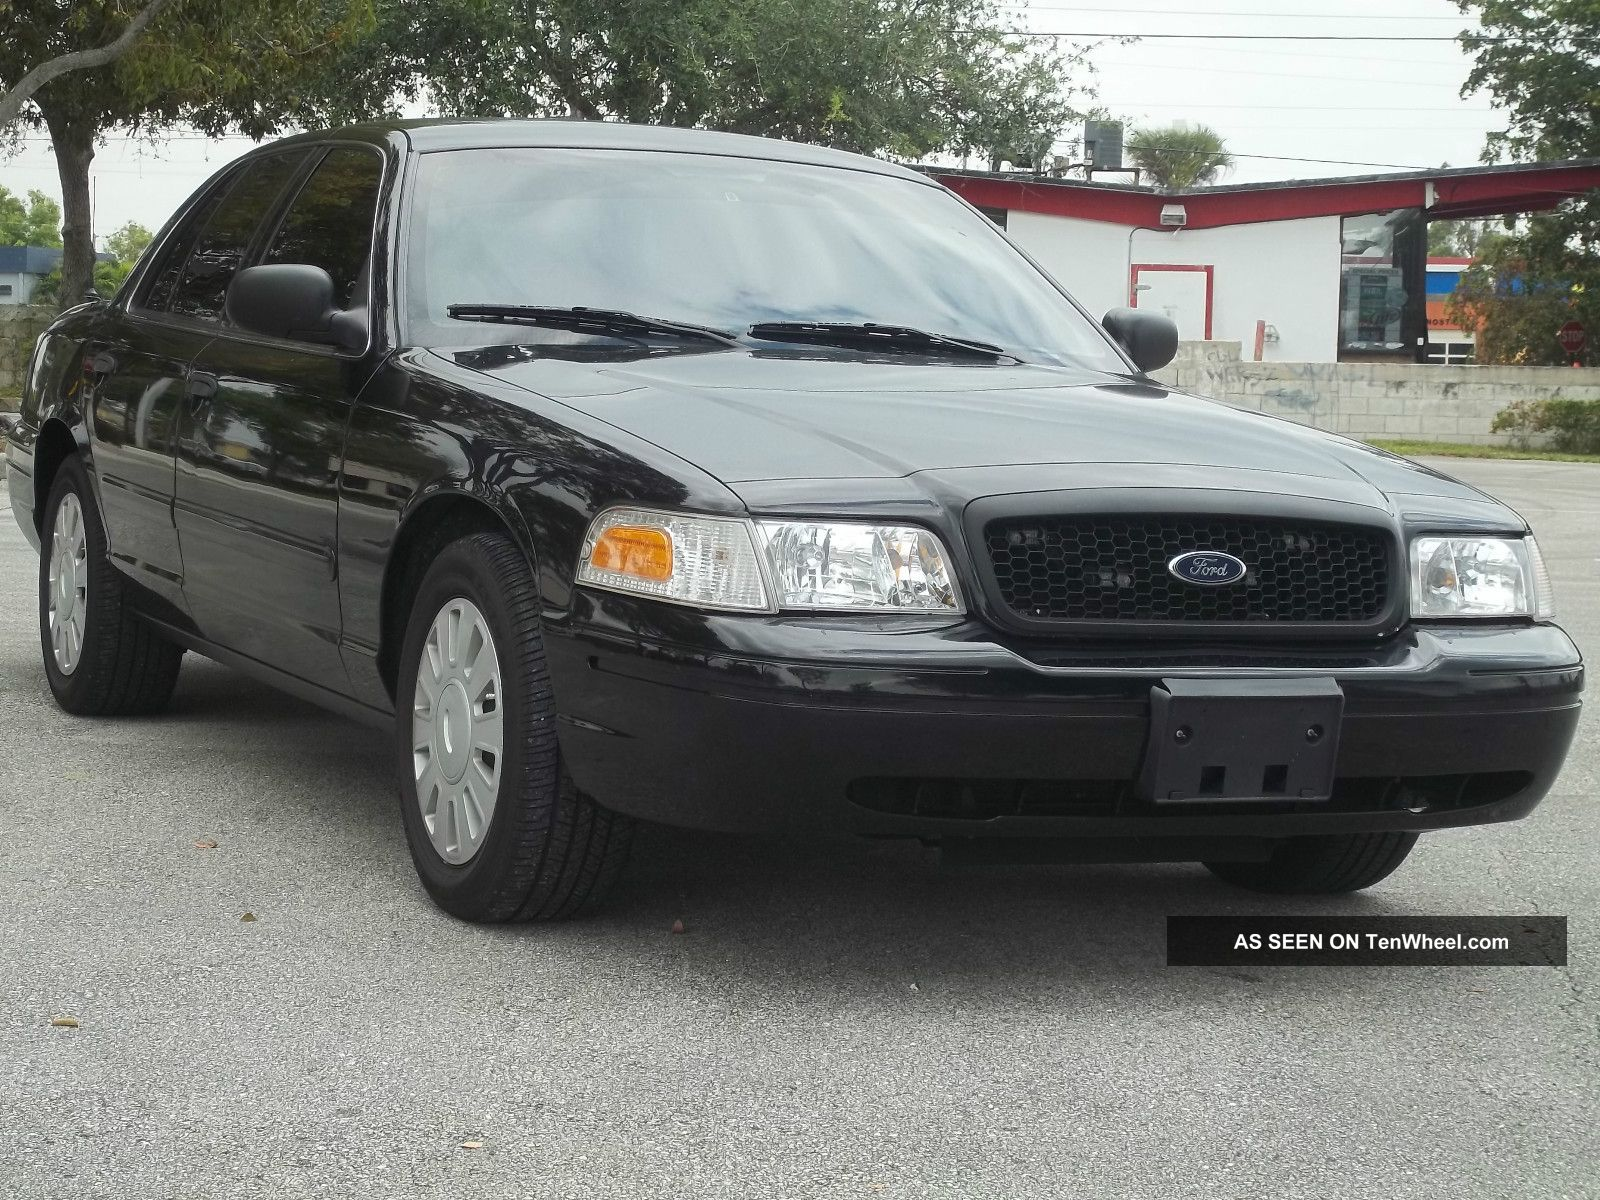 2008 Ford Crown Victoria Police Interceptor Black With